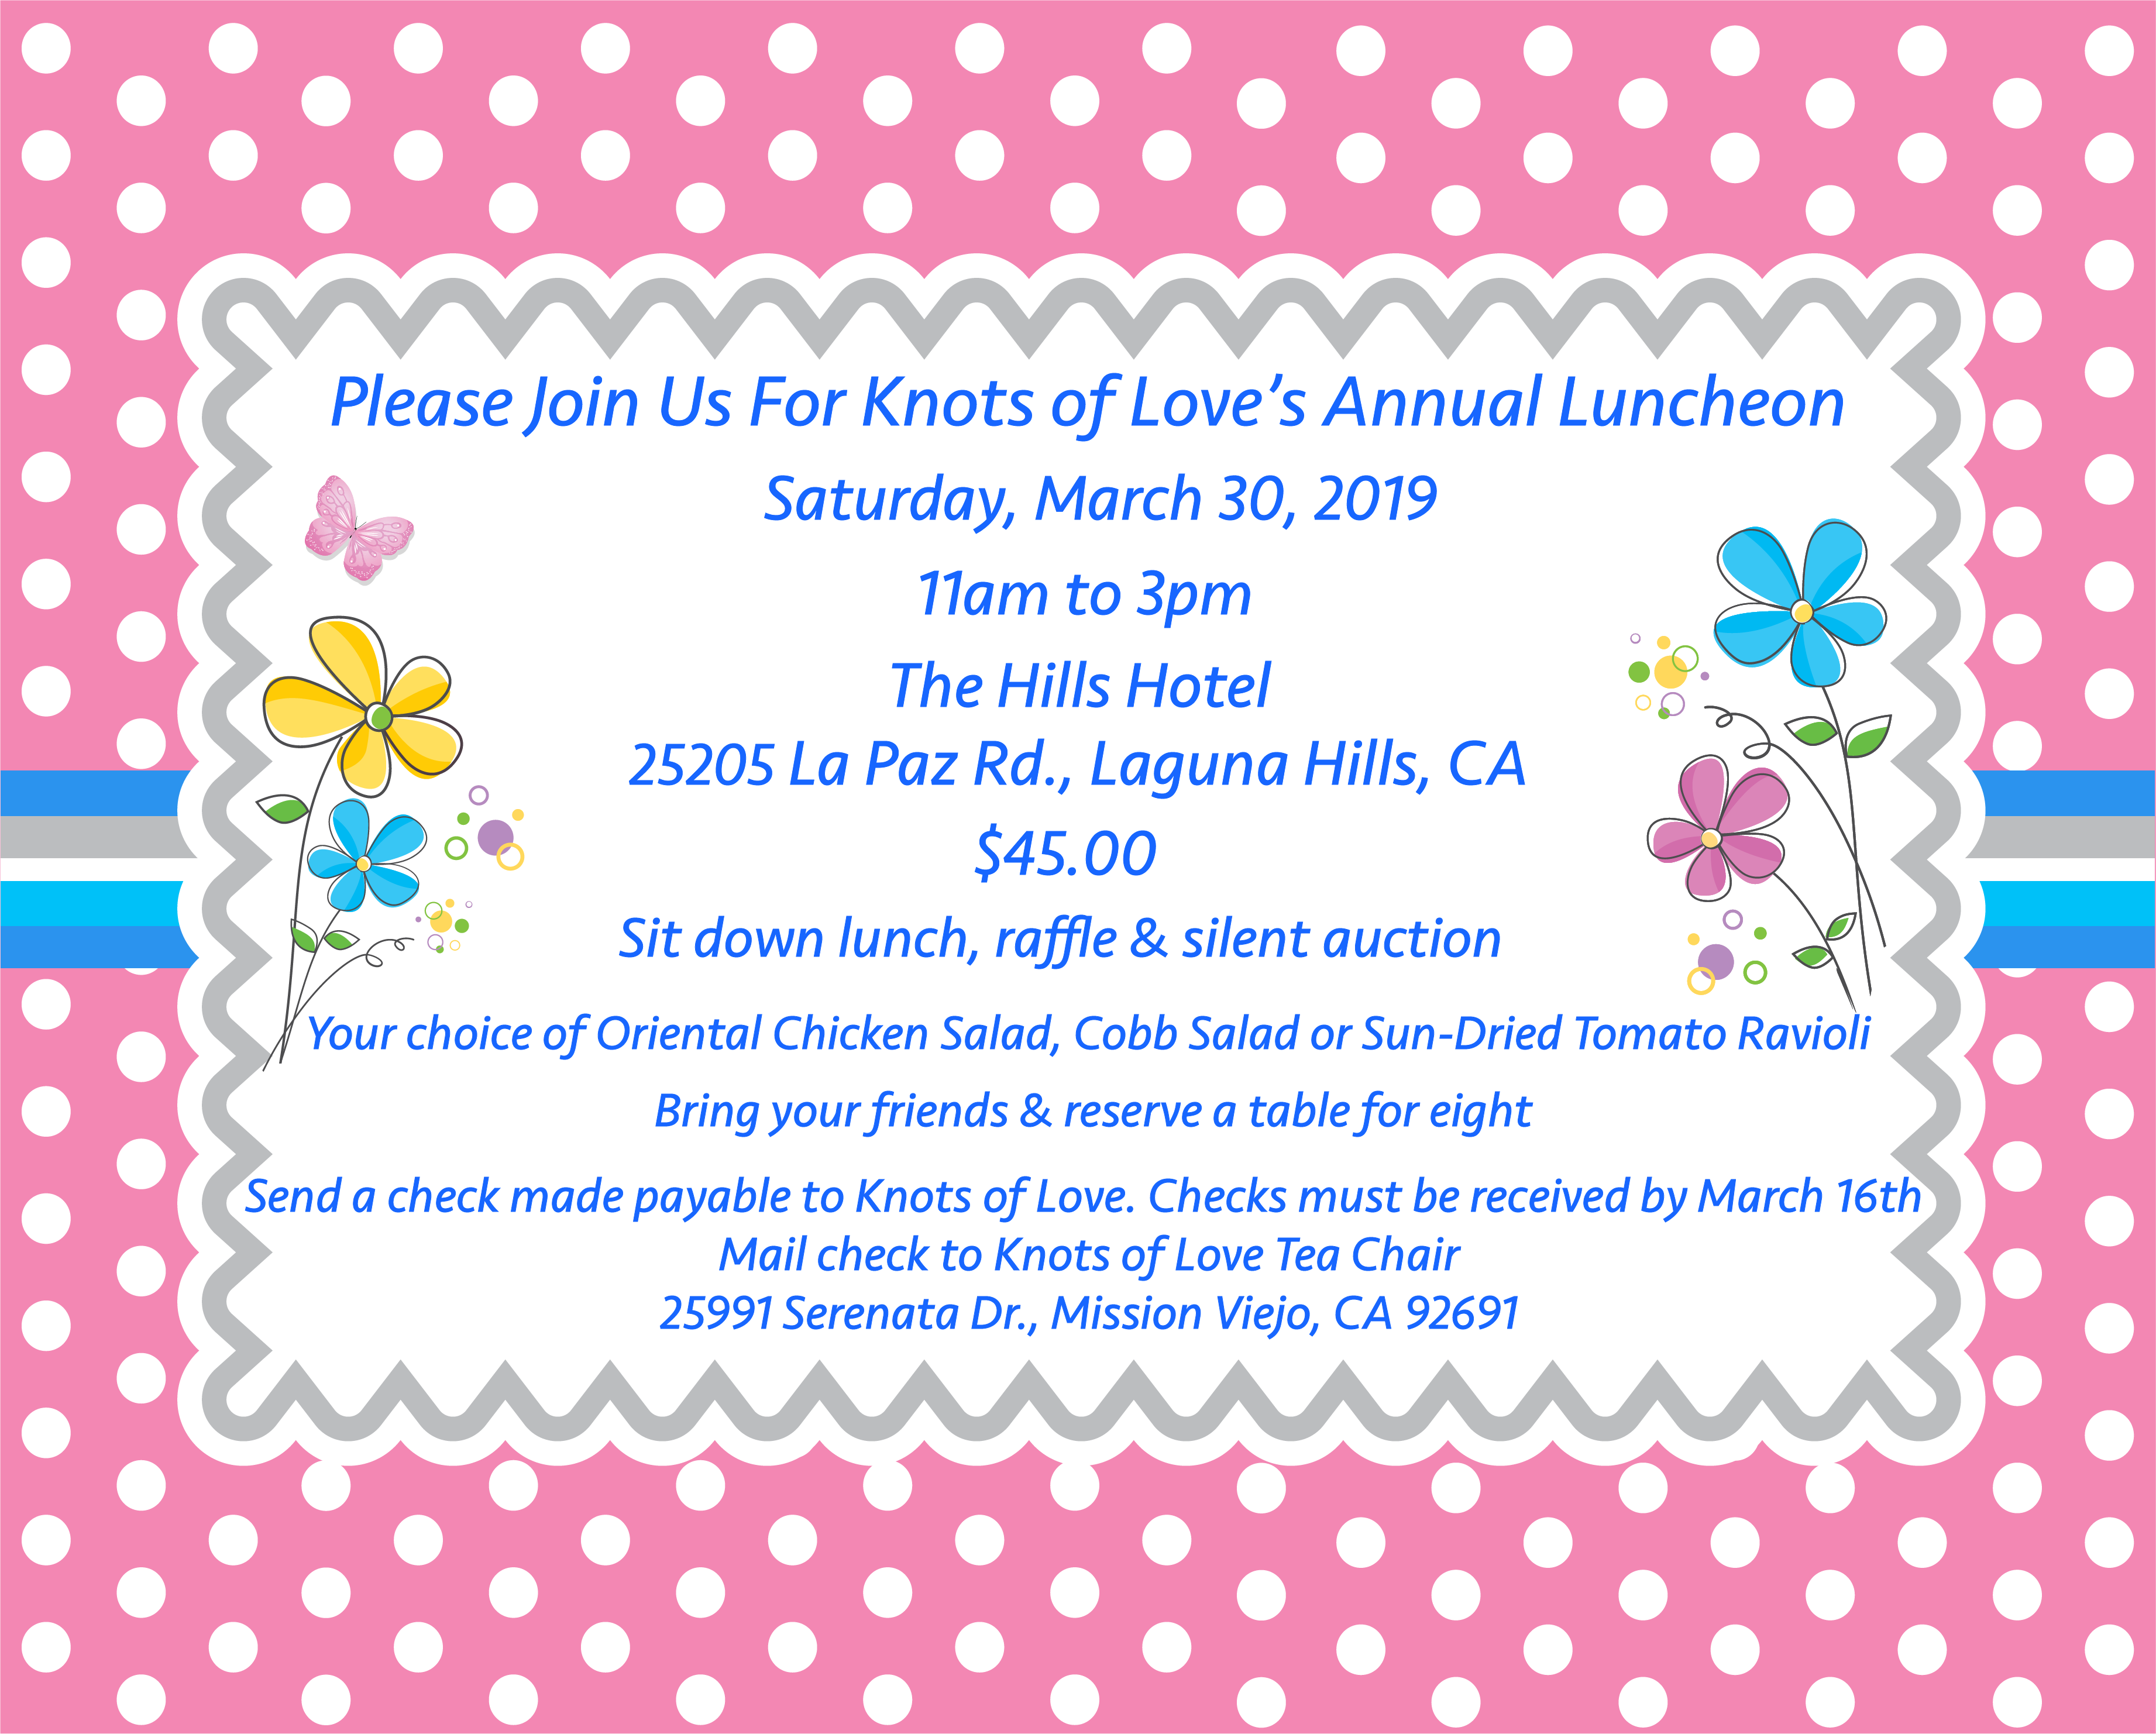 Knots of Love Annual Luncheon